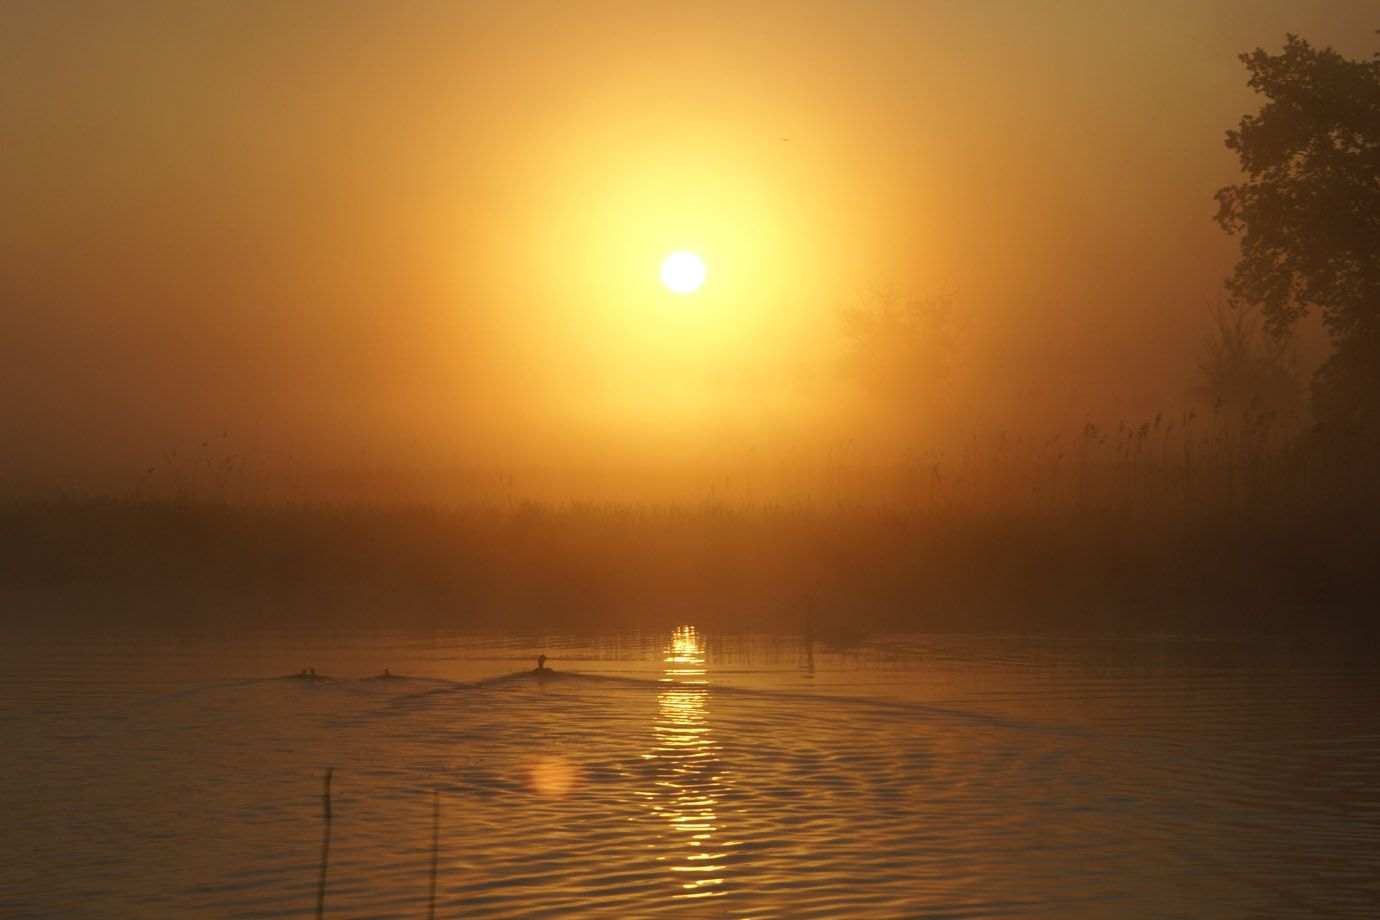 Golden sunrise at the Peene